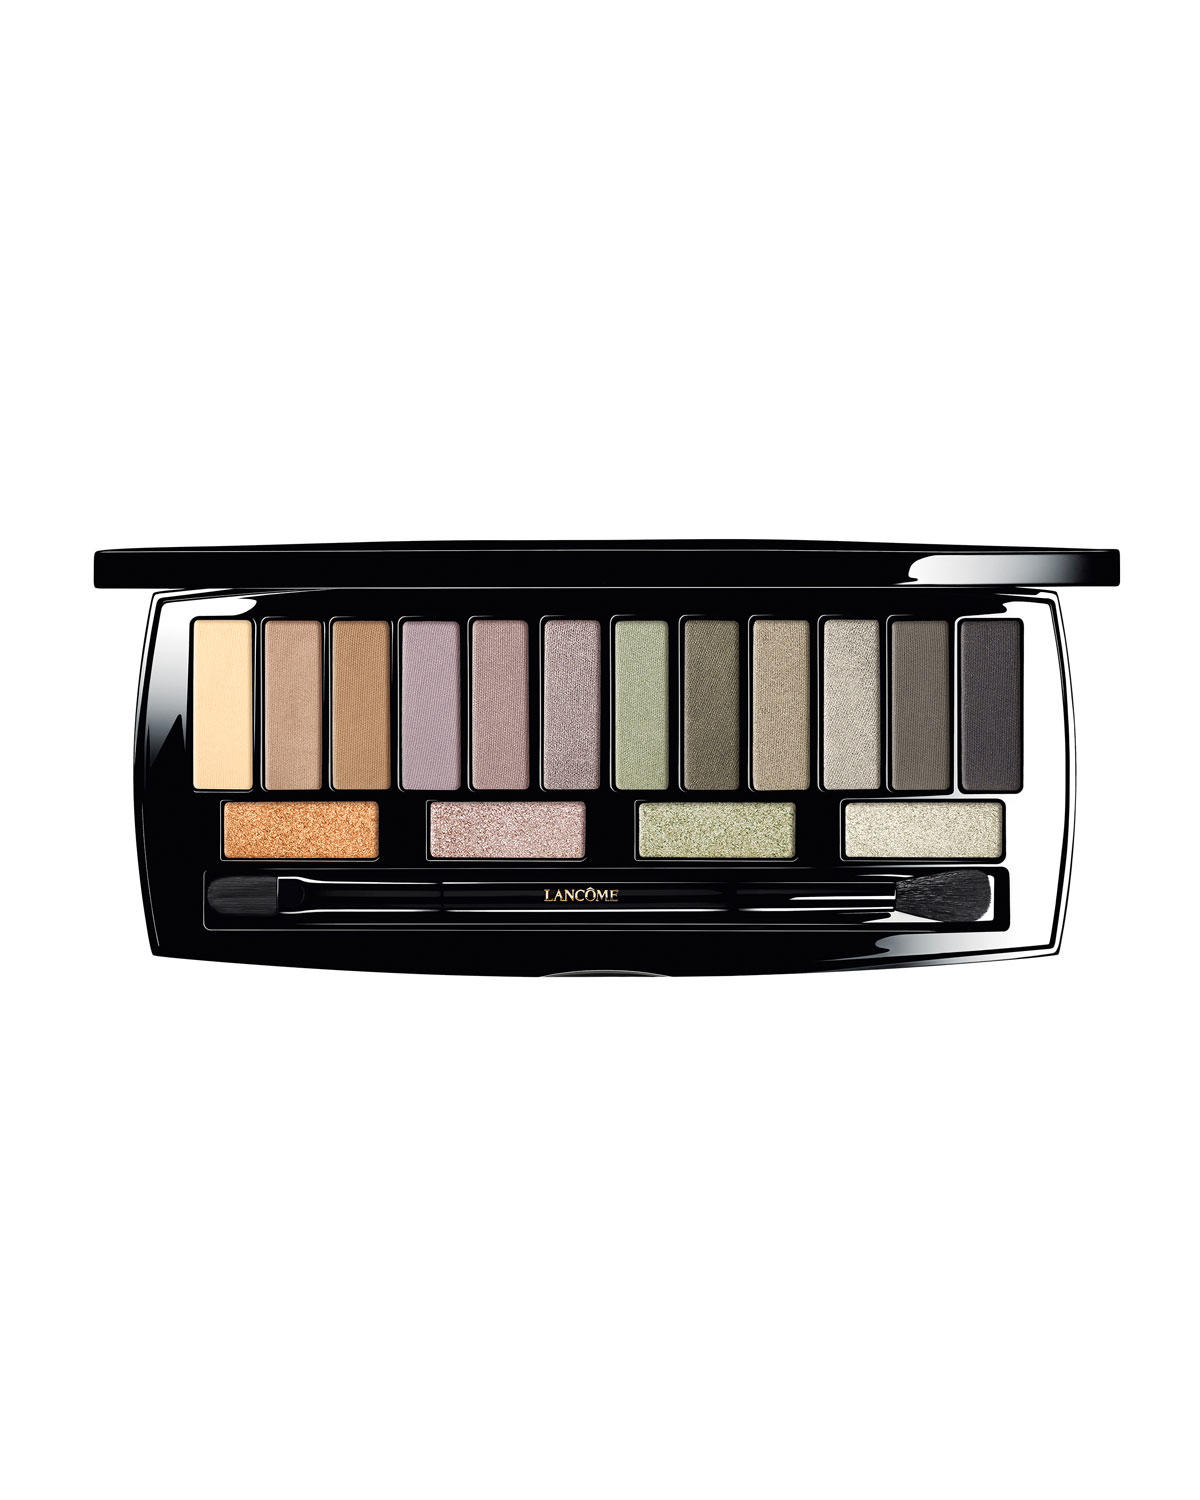 Lancome Auda(City) In London Eyeshadow Palette